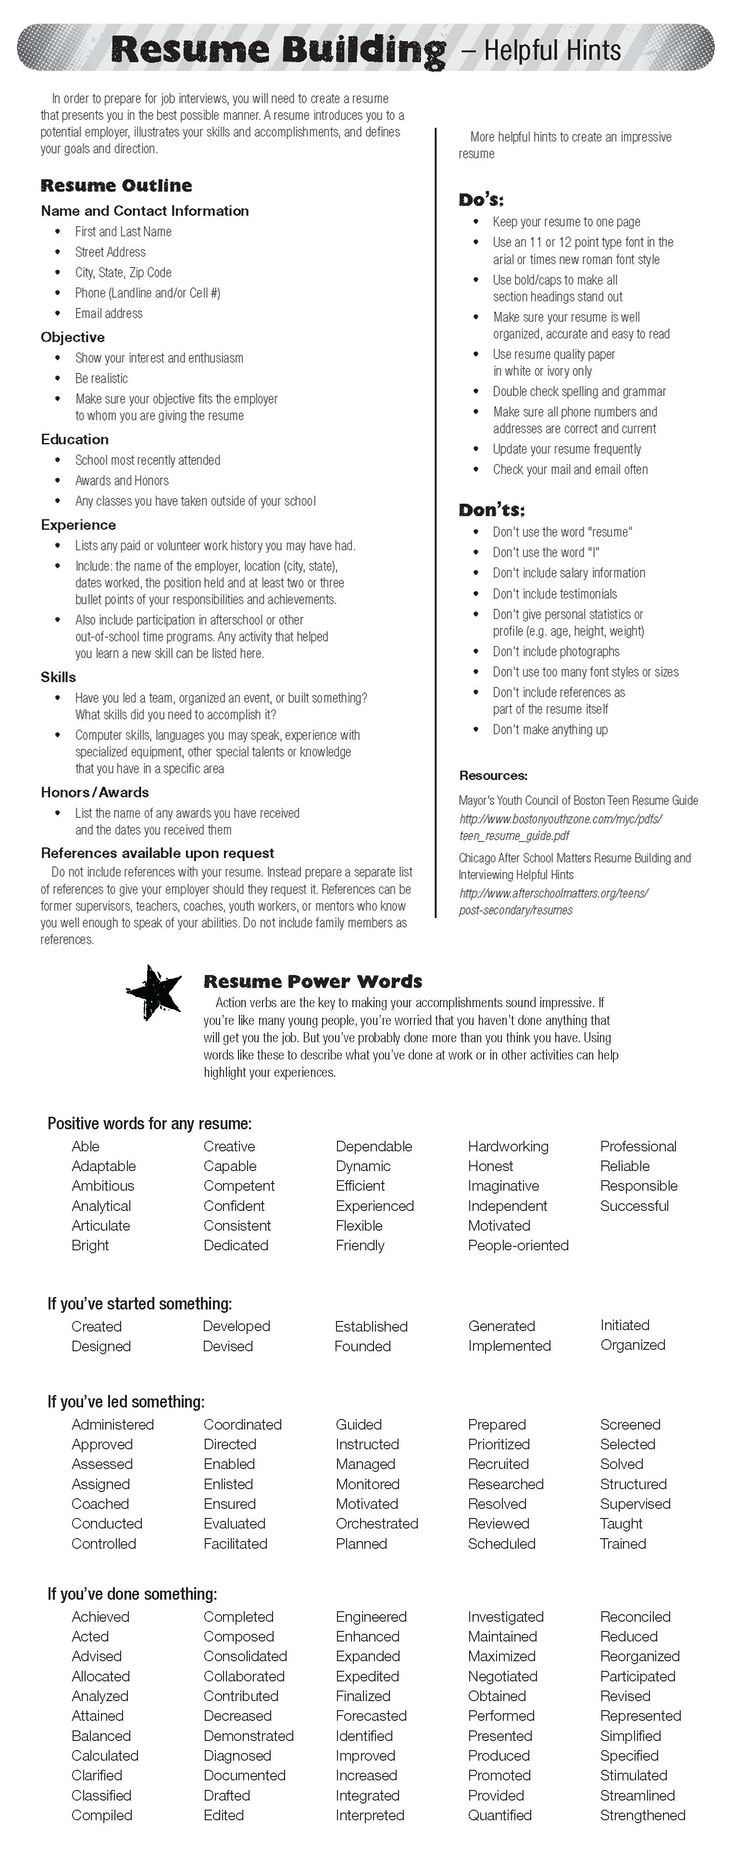 Opposenewapstandardsus  Prepossessing  Ideas About Resume On Pinterest  Cv Format Resume Cv And  With Magnificent  Ideas About Resume On Pinterest  Cv Format Resume Cv And Resume Templates With Astounding My Perfect Resume Free Also Receptionist Skills Resume In Addition Assistant Buyer Resume And Relevant Skills For Resume As Well As Freelance Photographer Resume Additionally Templates For Resume From Pinterestcom With Opposenewapstandardsus  Magnificent  Ideas About Resume On Pinterest  Cv Format Resume Cv And  With Astounding  Ideas About Resume On Pinterest  Cv Format Resume Cv And Resume Templates And Prepossessing My Perfect Resume Free Also Receptionist Skills Resume In Addition Assistant Buyer Resume From Pinterestcom